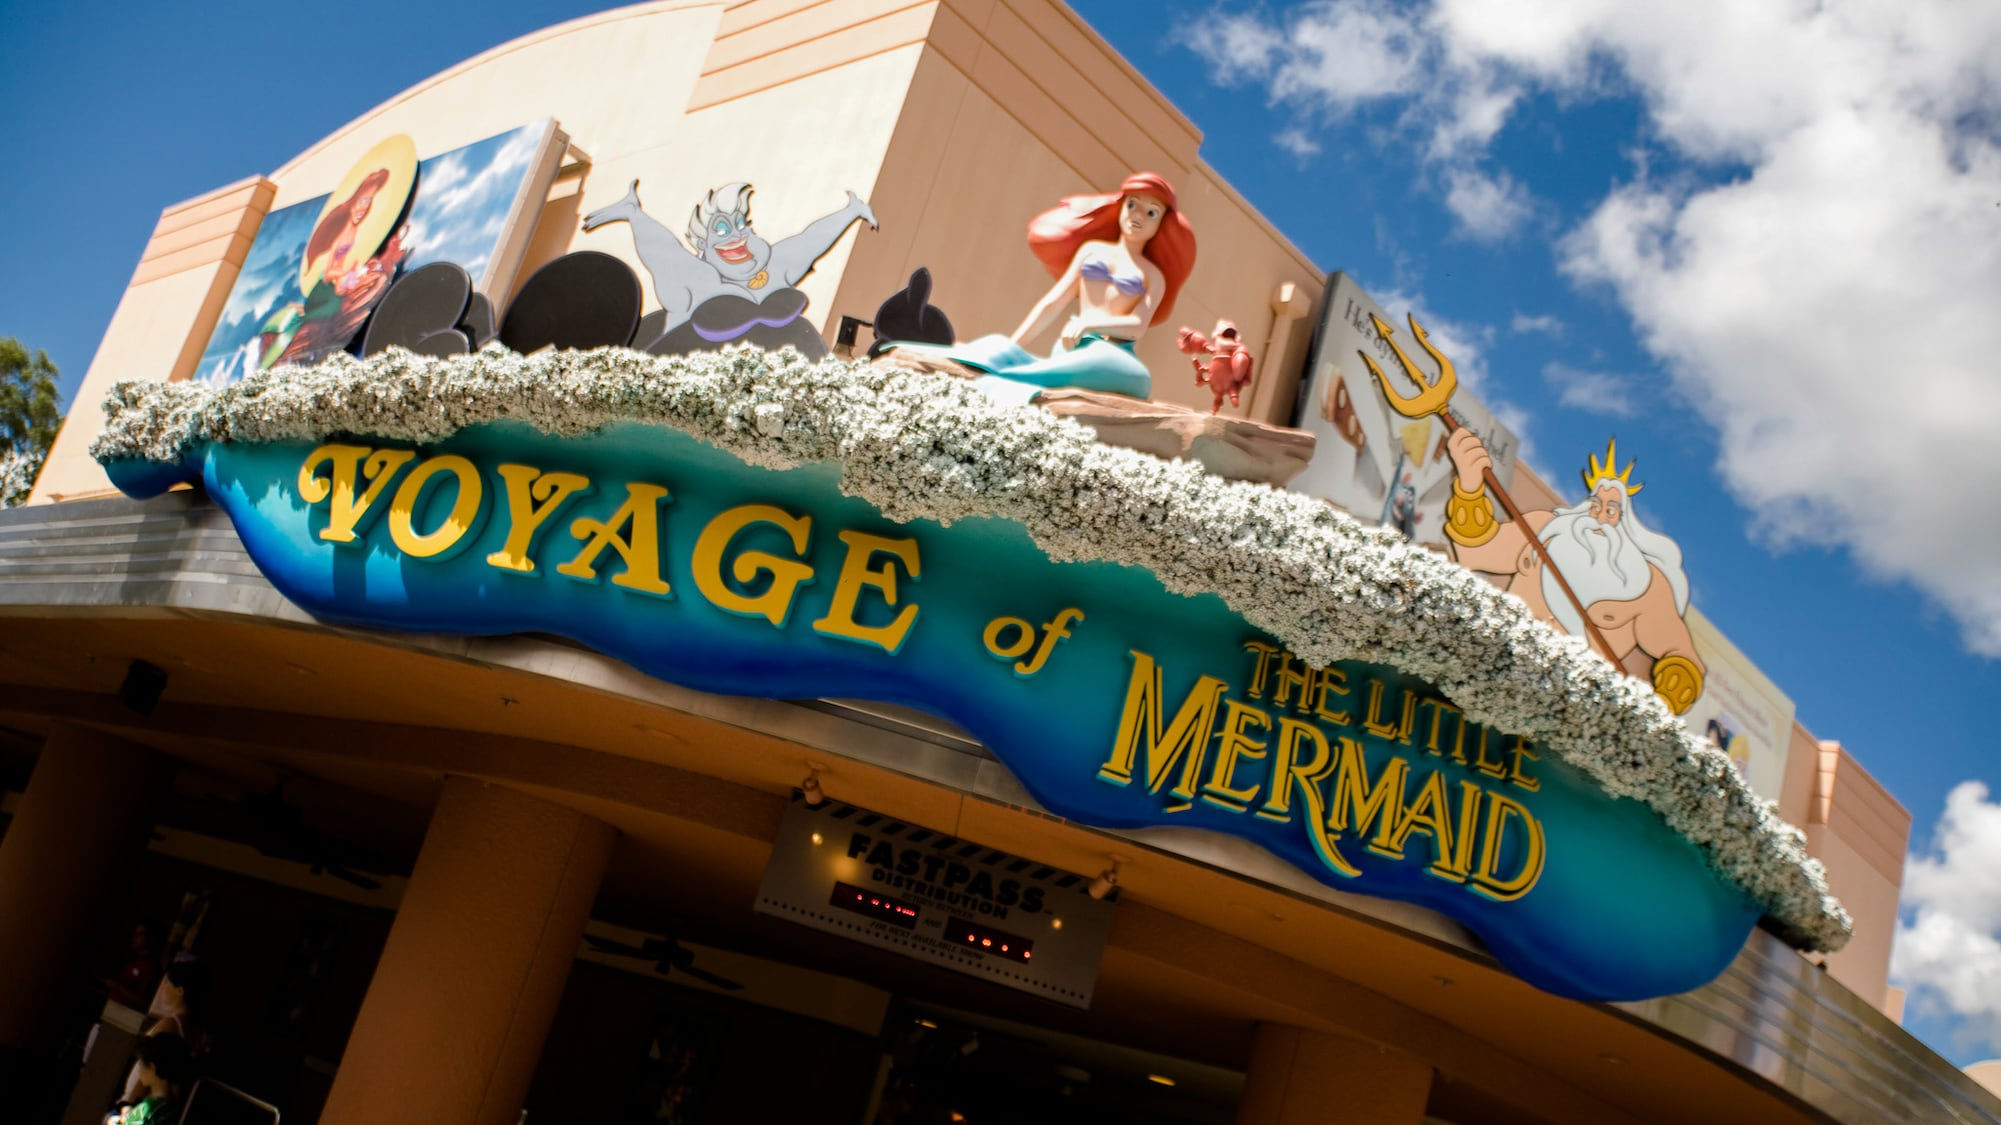 voyage-of-the-little-mermaid